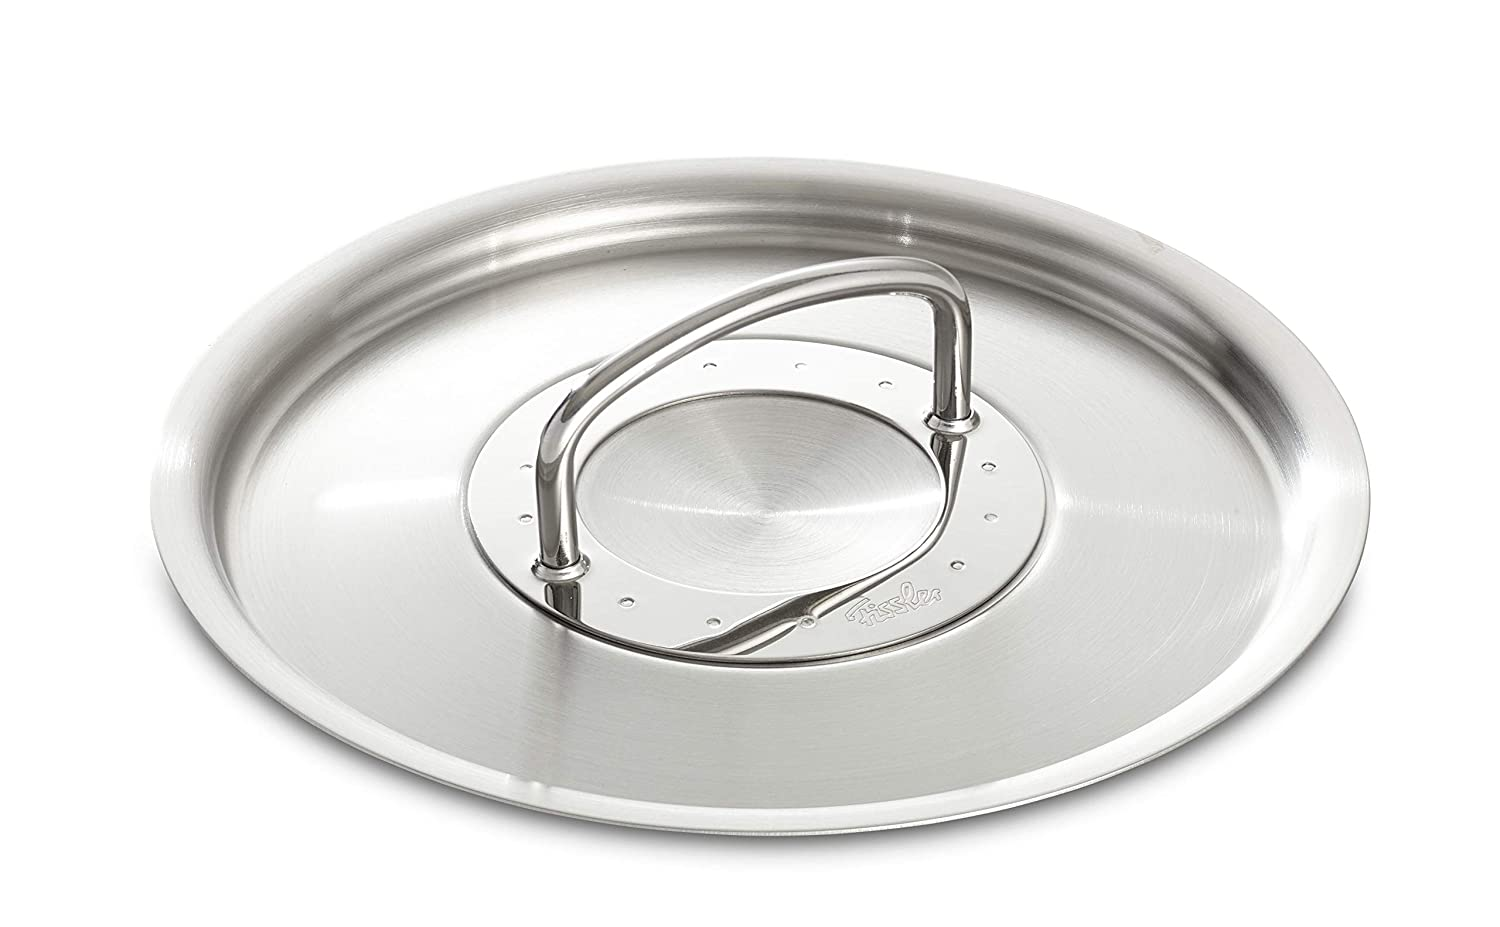 Metal / Lid for Pots and Pans with 28/ cm Diameter Fissler Original Profi Collection Metal Lid/  Accessories 8310428600 Replacement